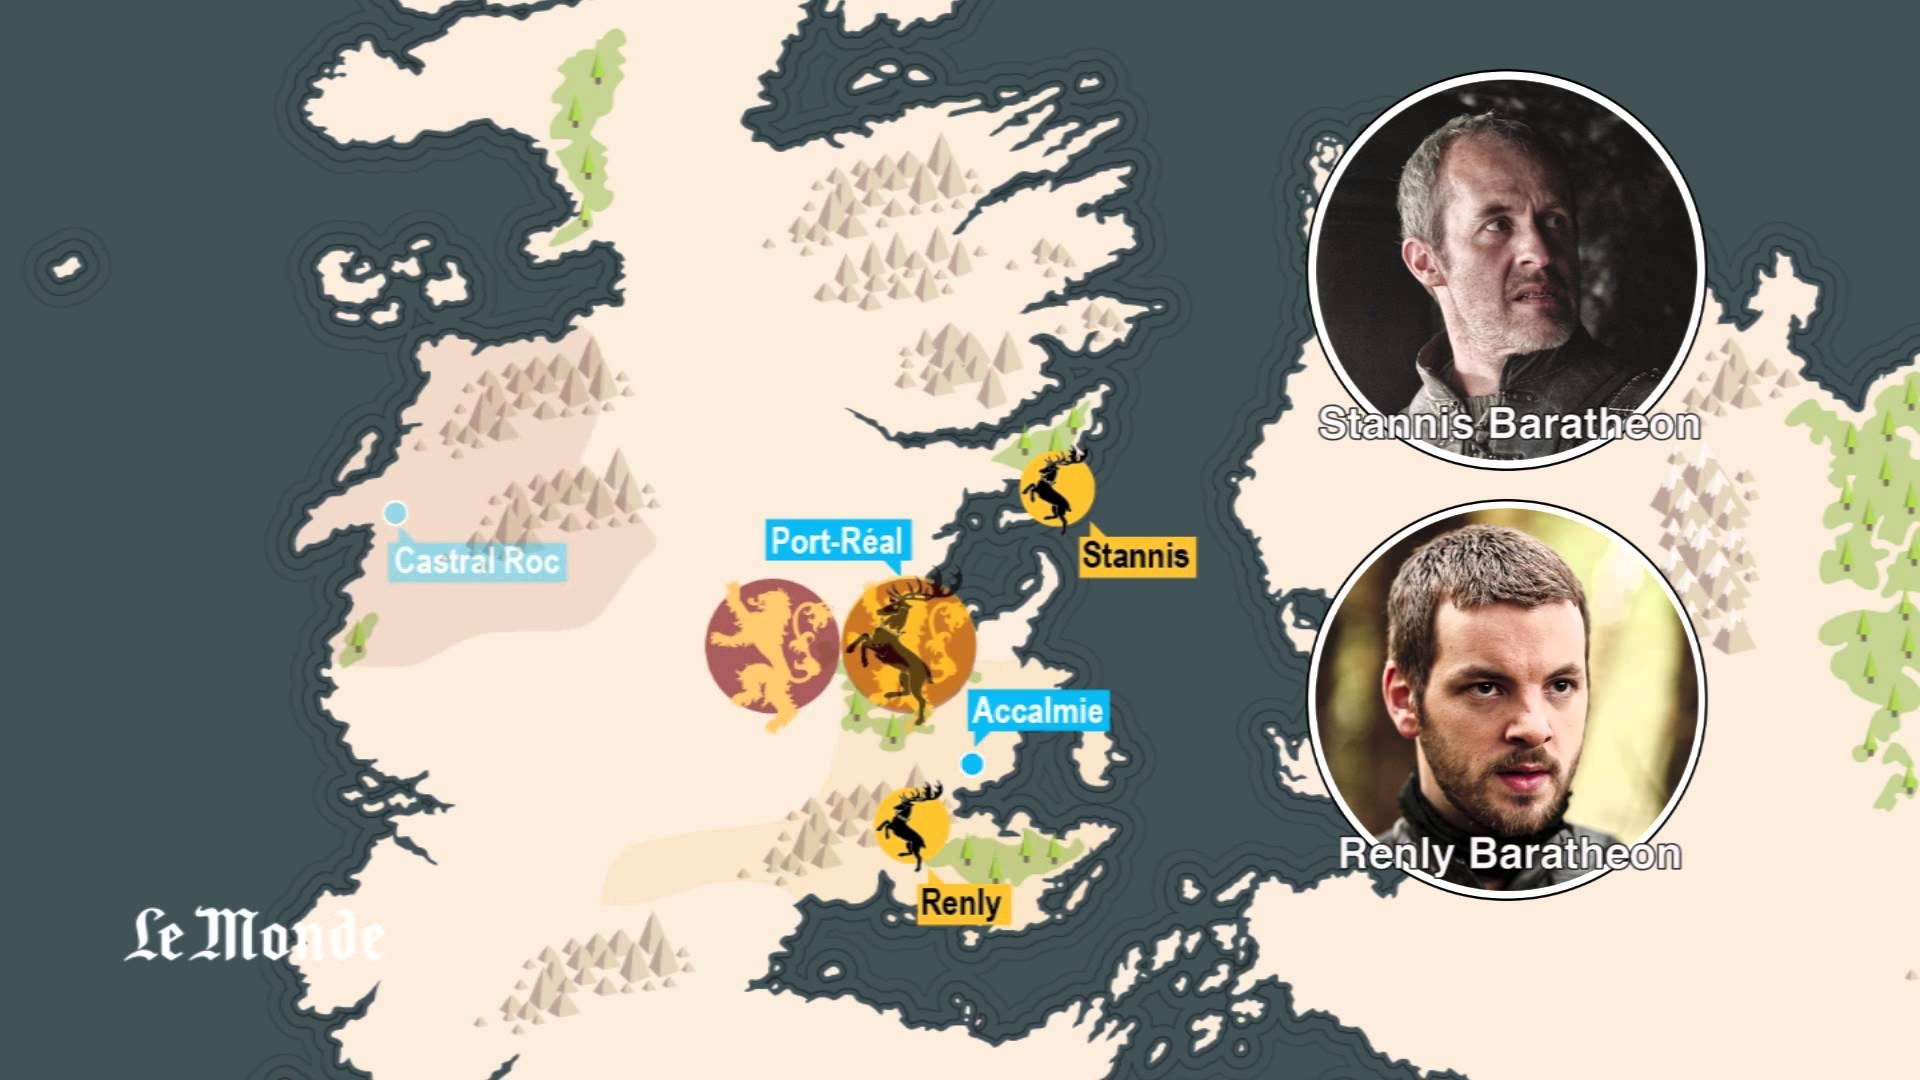 The First Three Seasons of 'Game of Thrones' Summarized in Less Than 5 Minutes with Maps